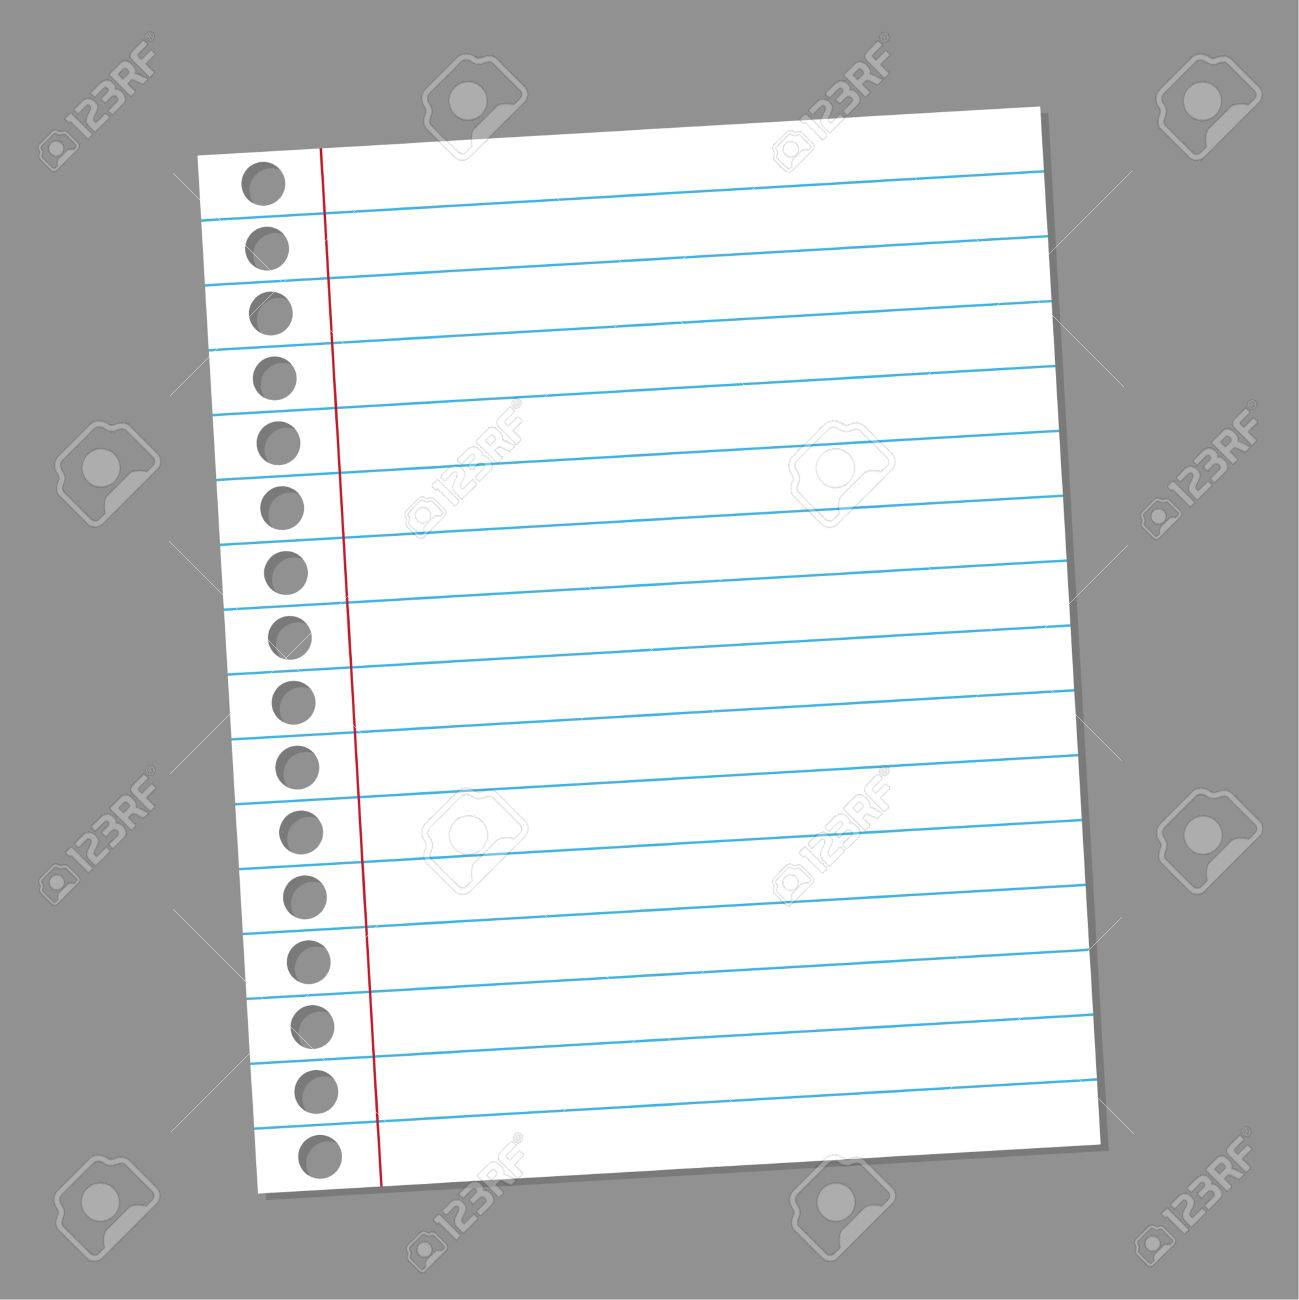 graphic relating to Blank to Do List named Blank paper be aware for data. toward do record. Memory sticky take note